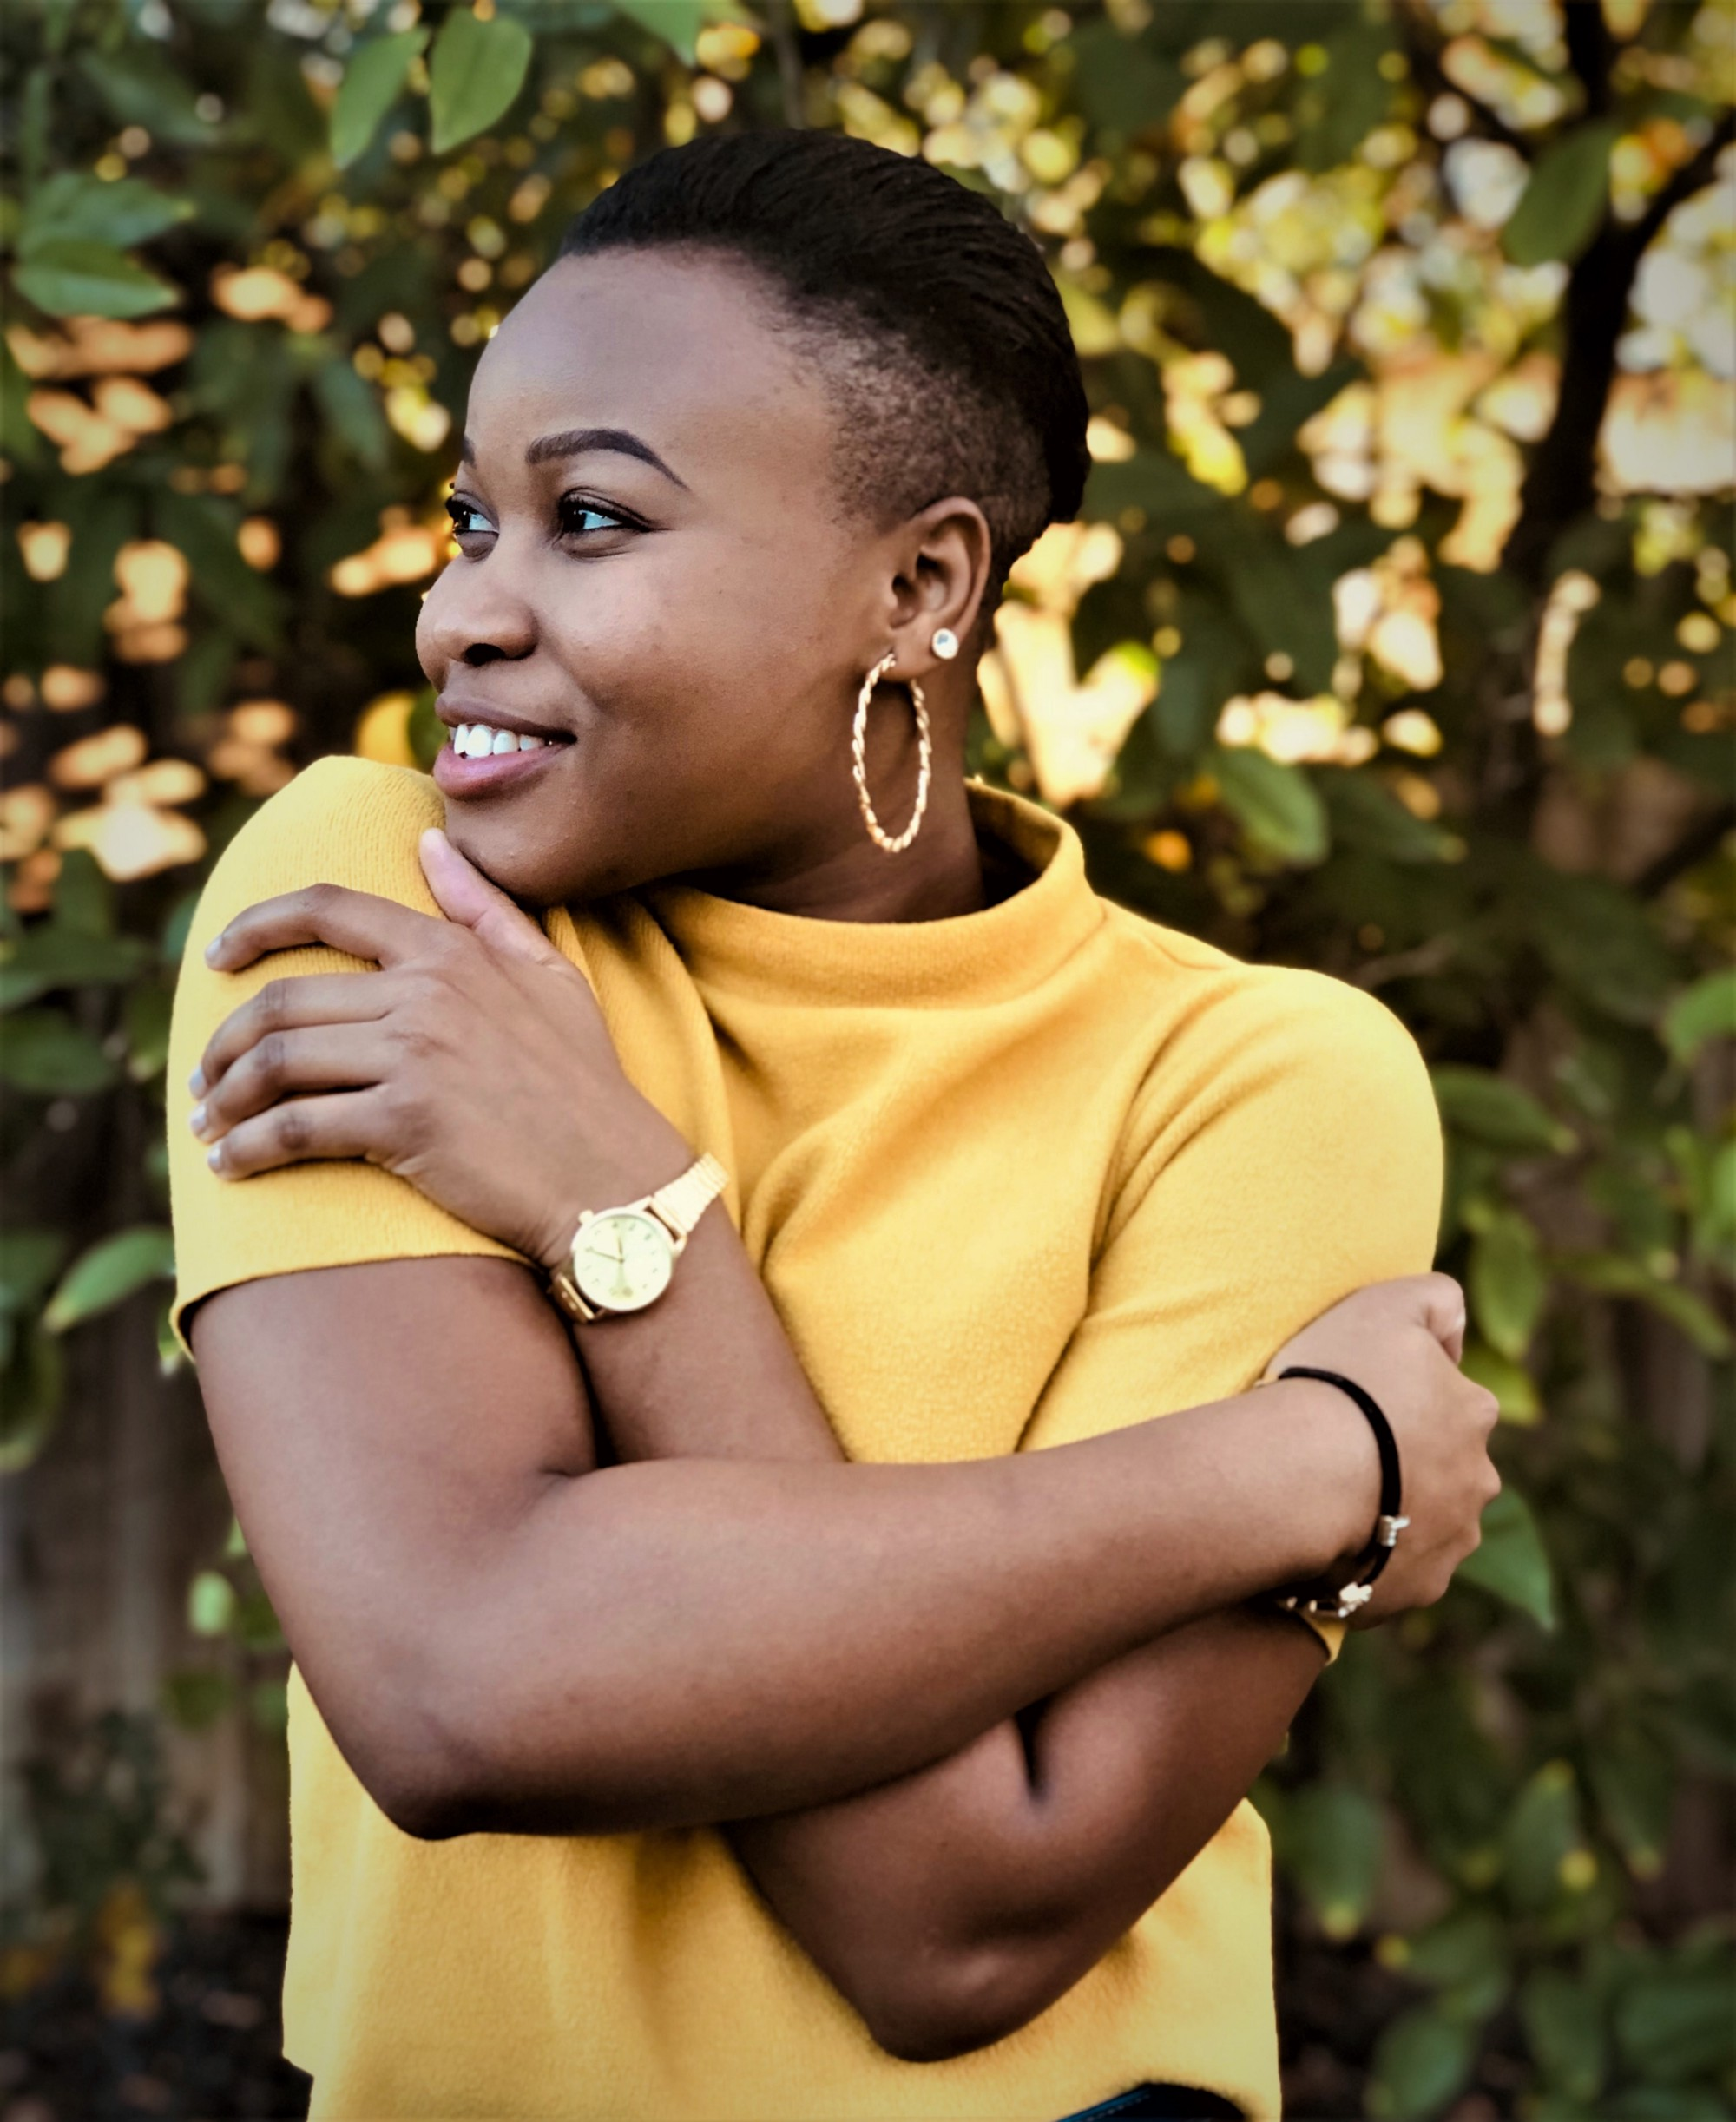 Happy woman wearing short-sleeve yellow top and gold watch hugging herself green leafy background